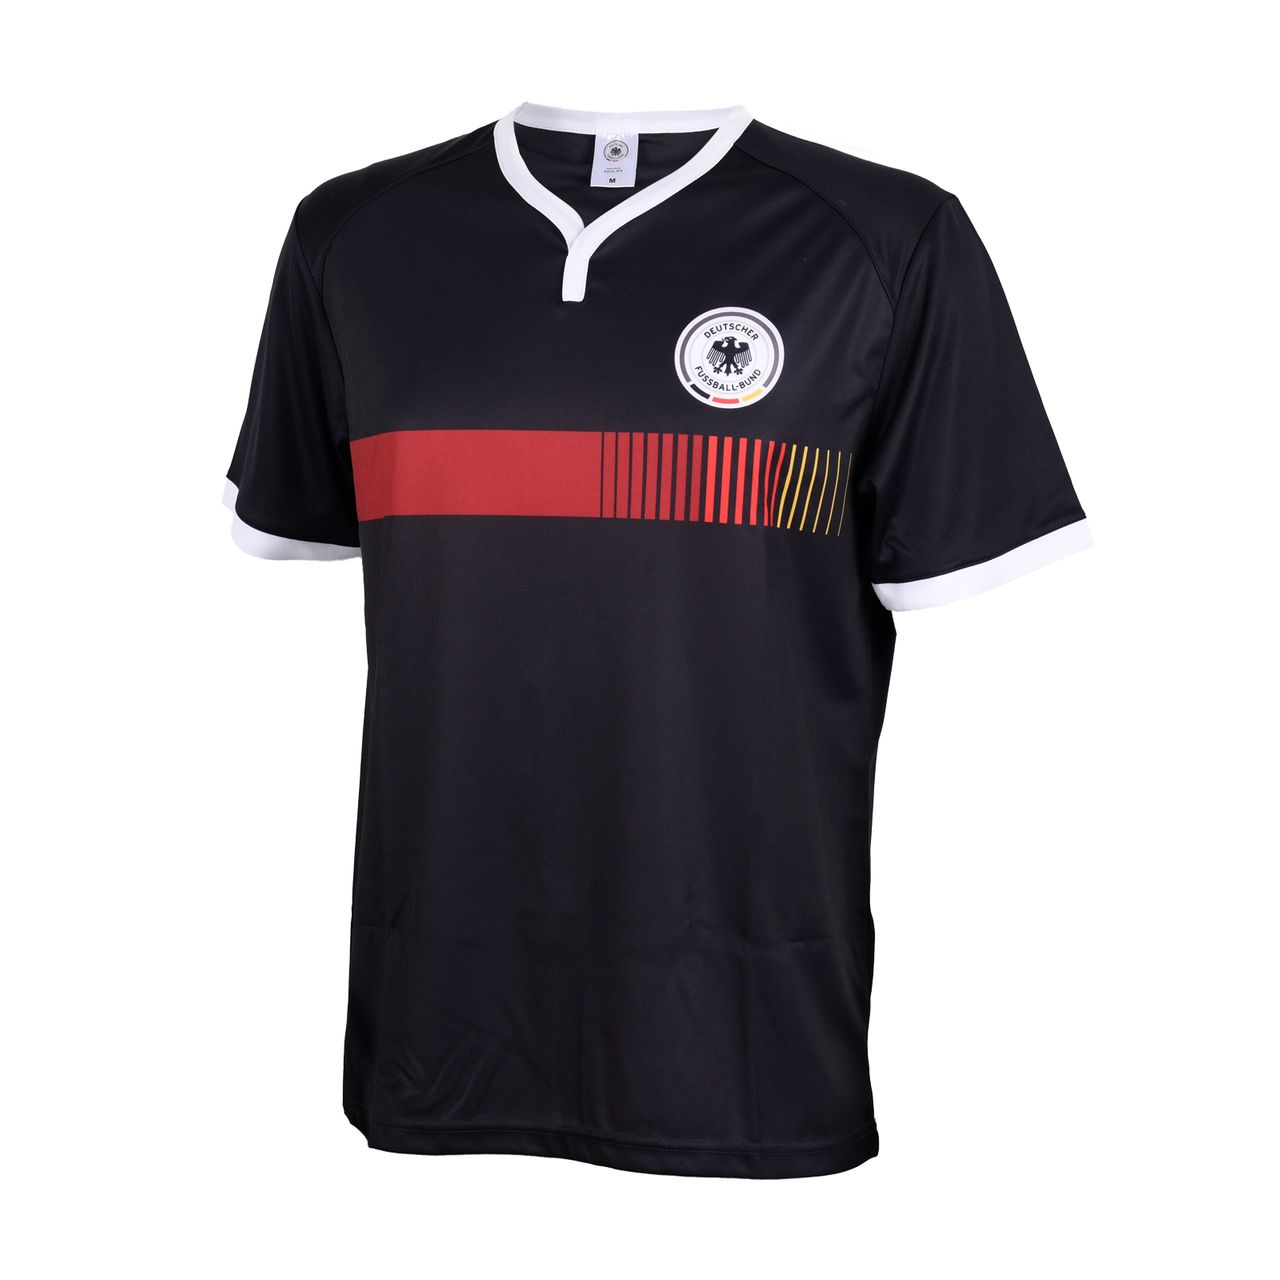 factory authentic shop new lower prices DFB Herren Fan Shirt Schwarz